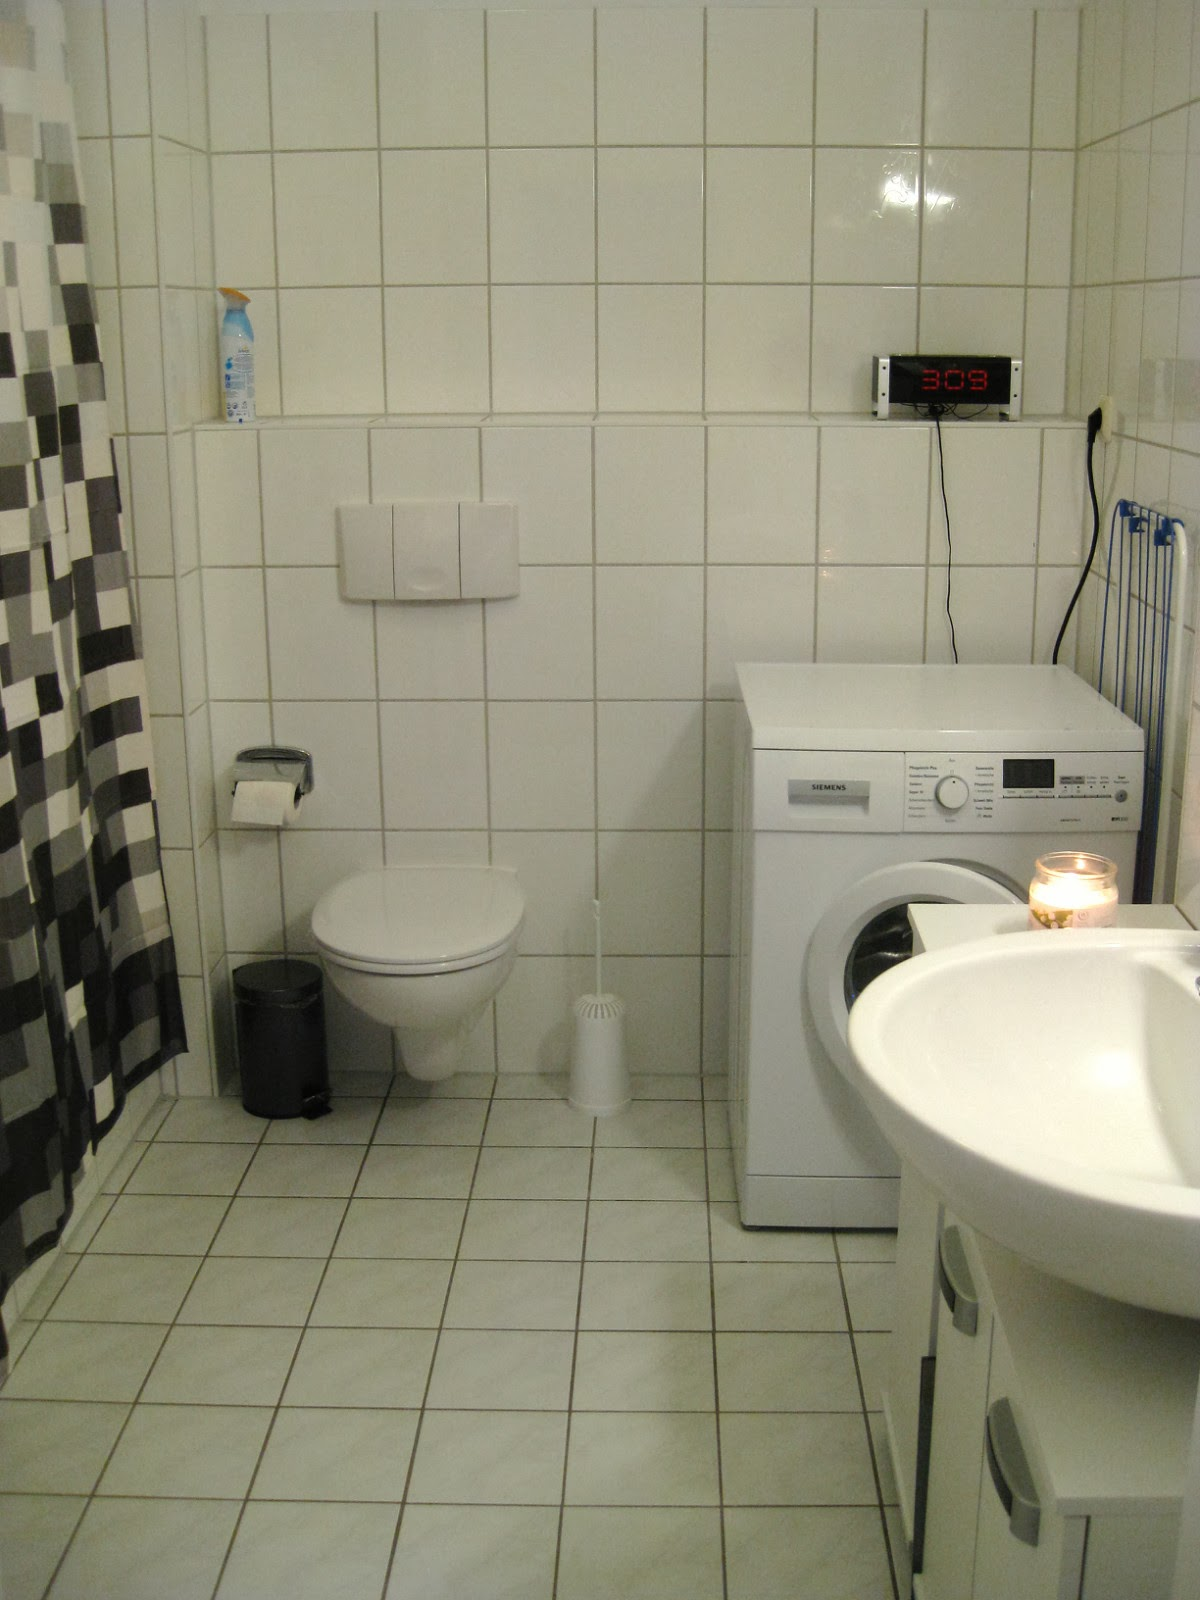 German apartment tour bathroom welcome to germerica for Small bathroom designs with washing machine